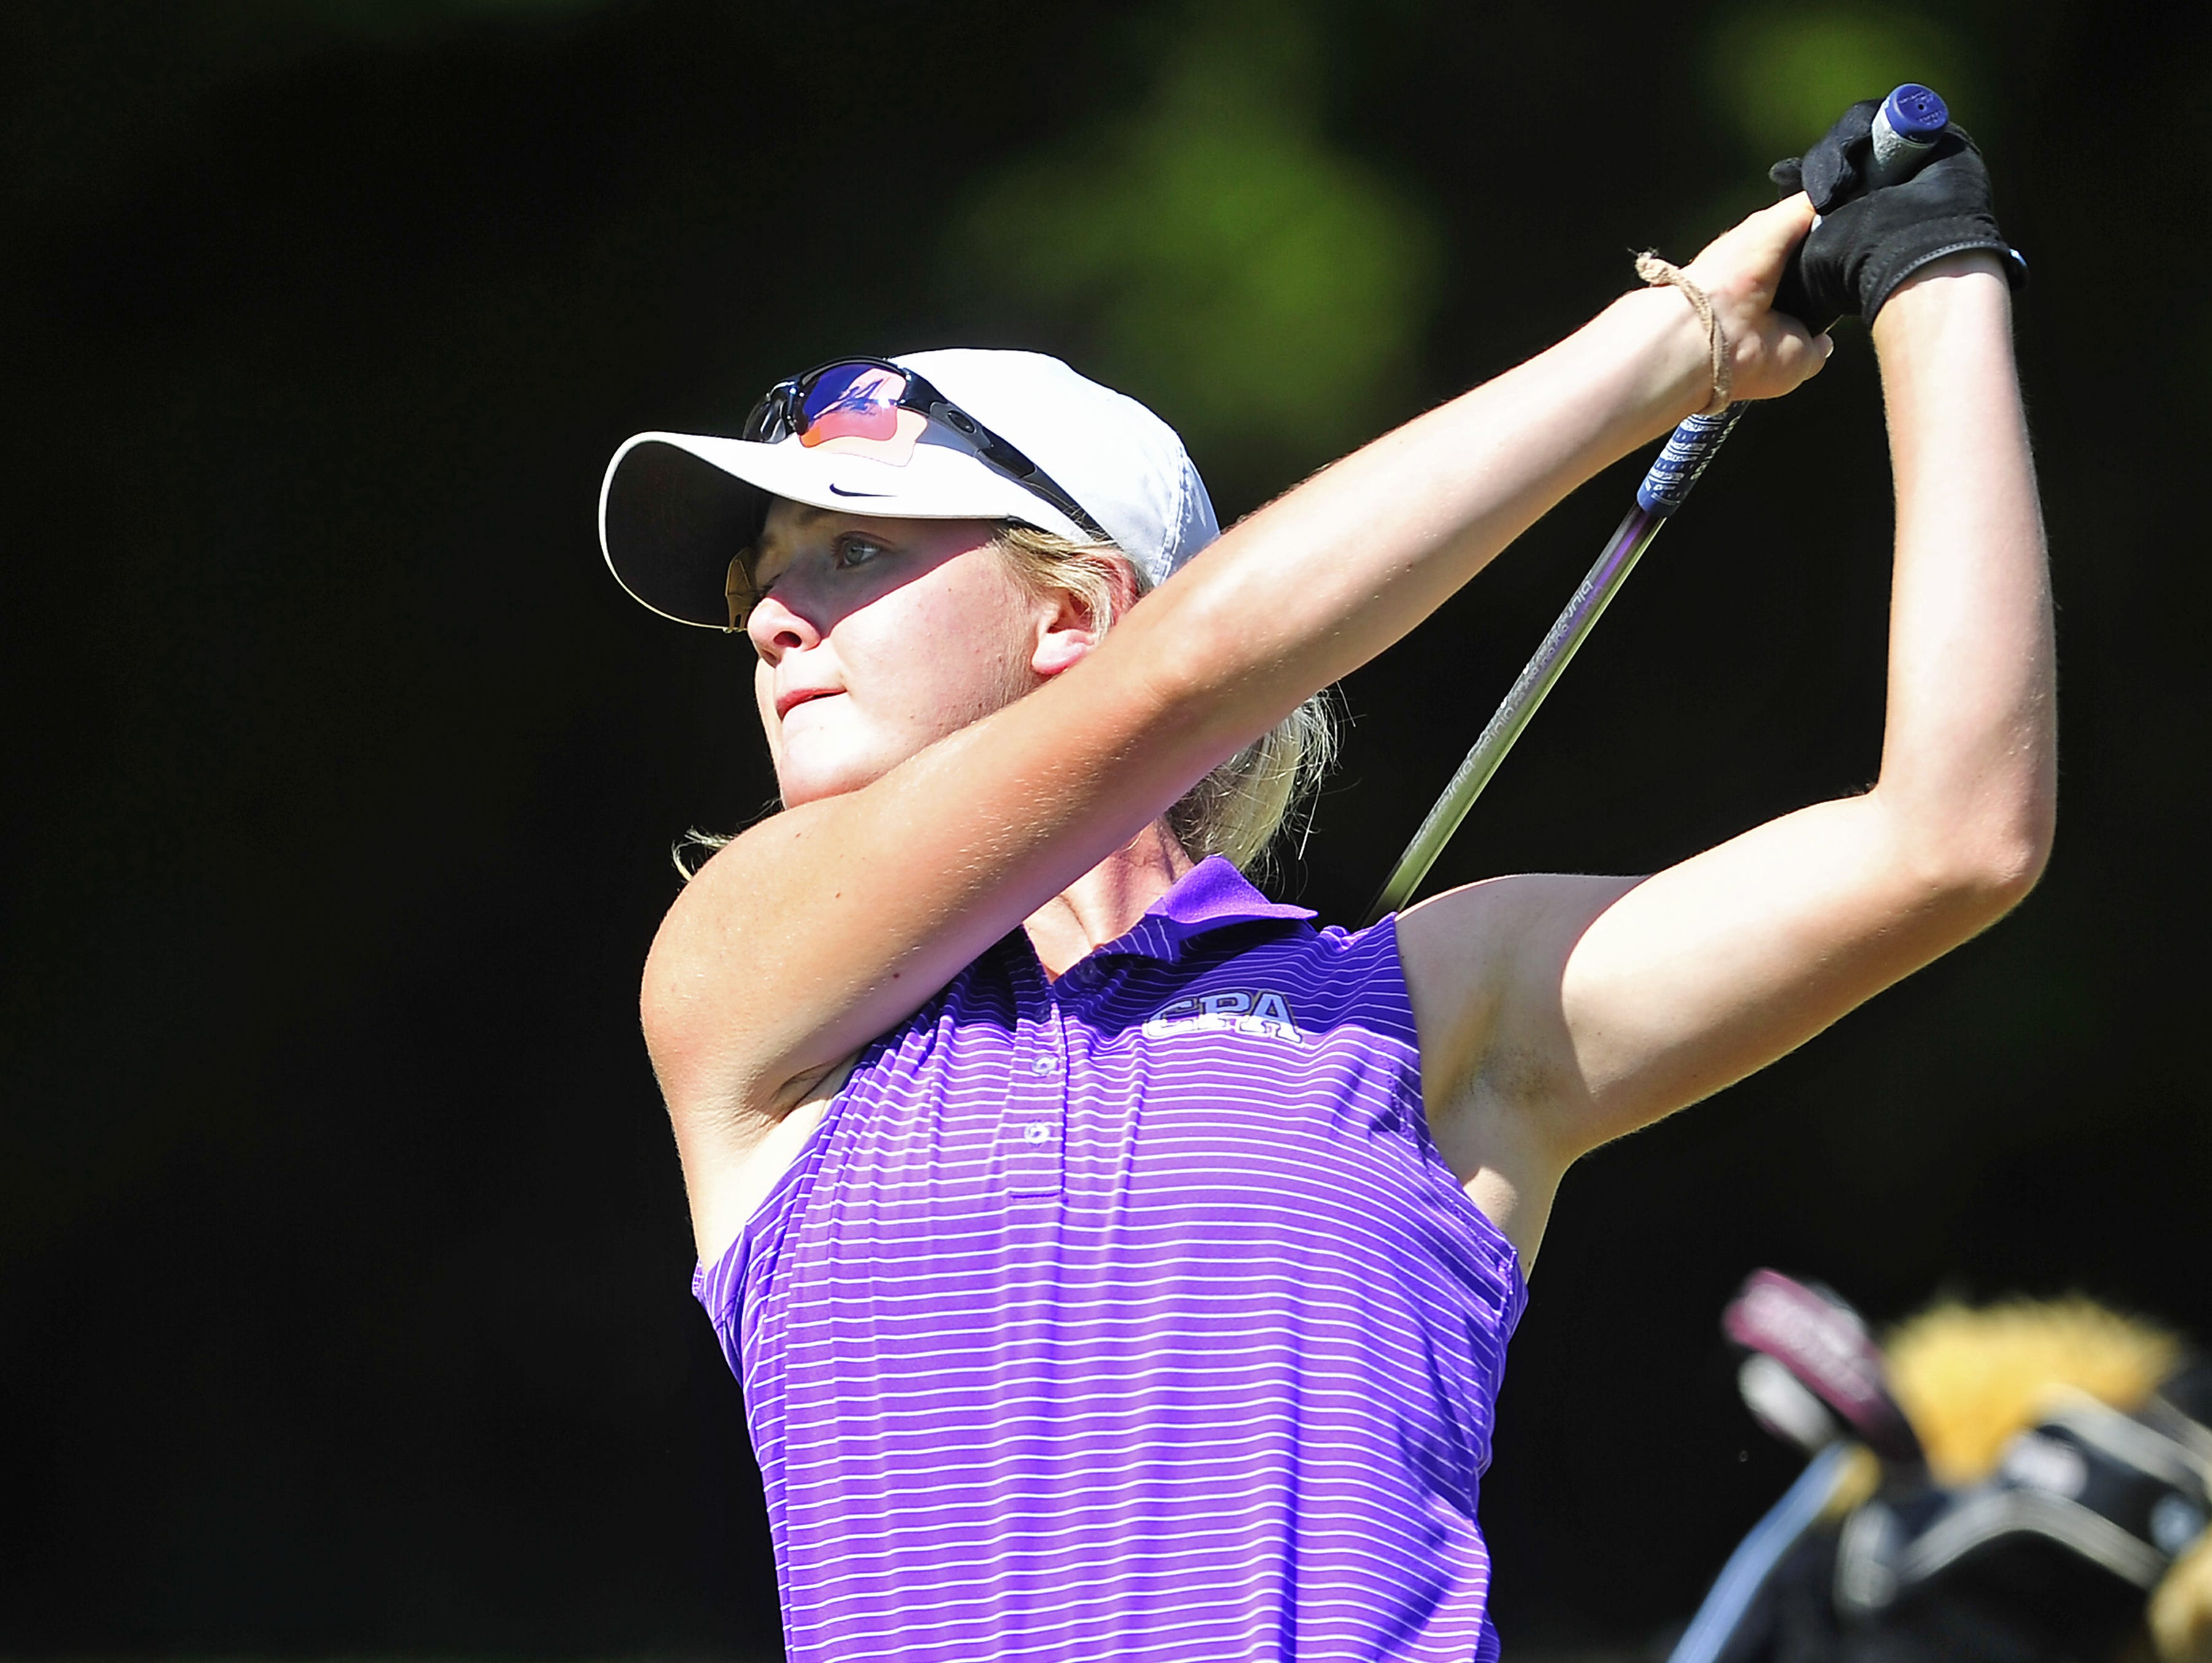 Reigning All-Midstate Girls Golfer of the Year Siarra Stout returns to defend her 2014 Class A-AA individual title.